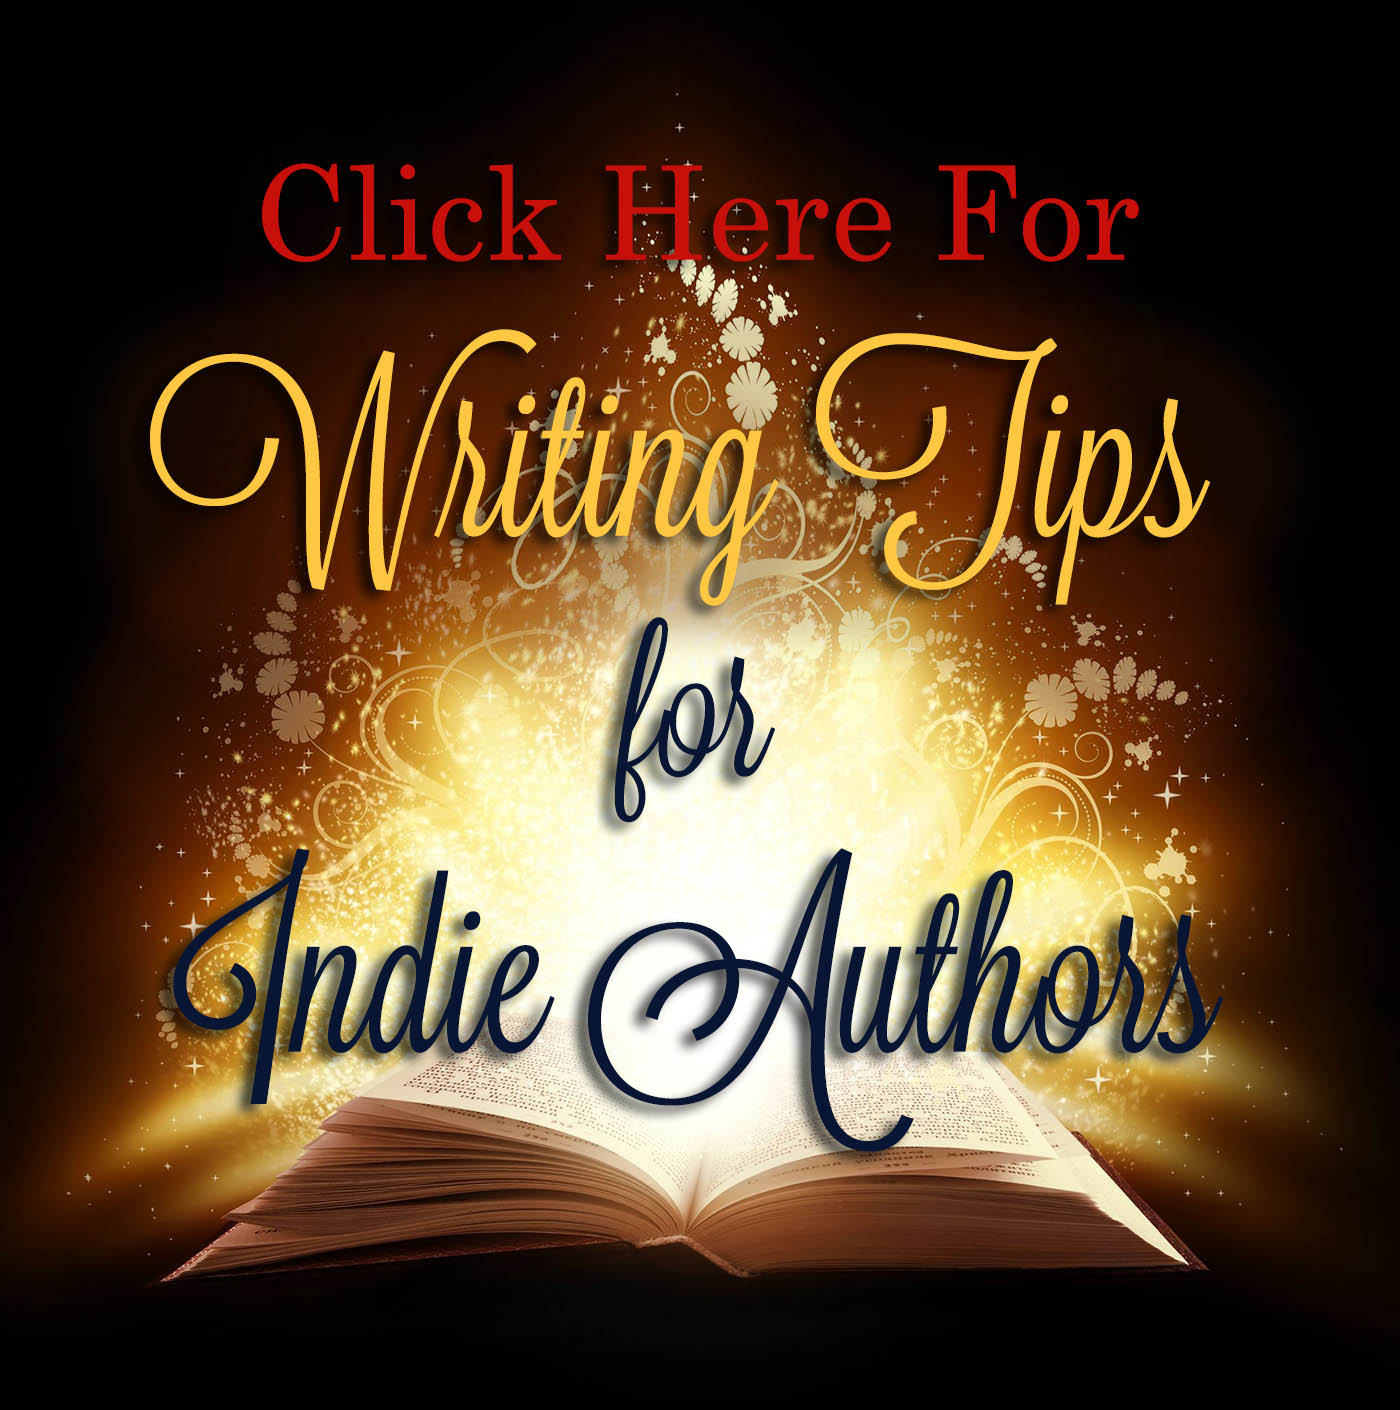 Writing Tips for Indie Authors blog. Find tips and tricks on the craft and business of writing for independent and self-published authors from editor and author Talena Winters.